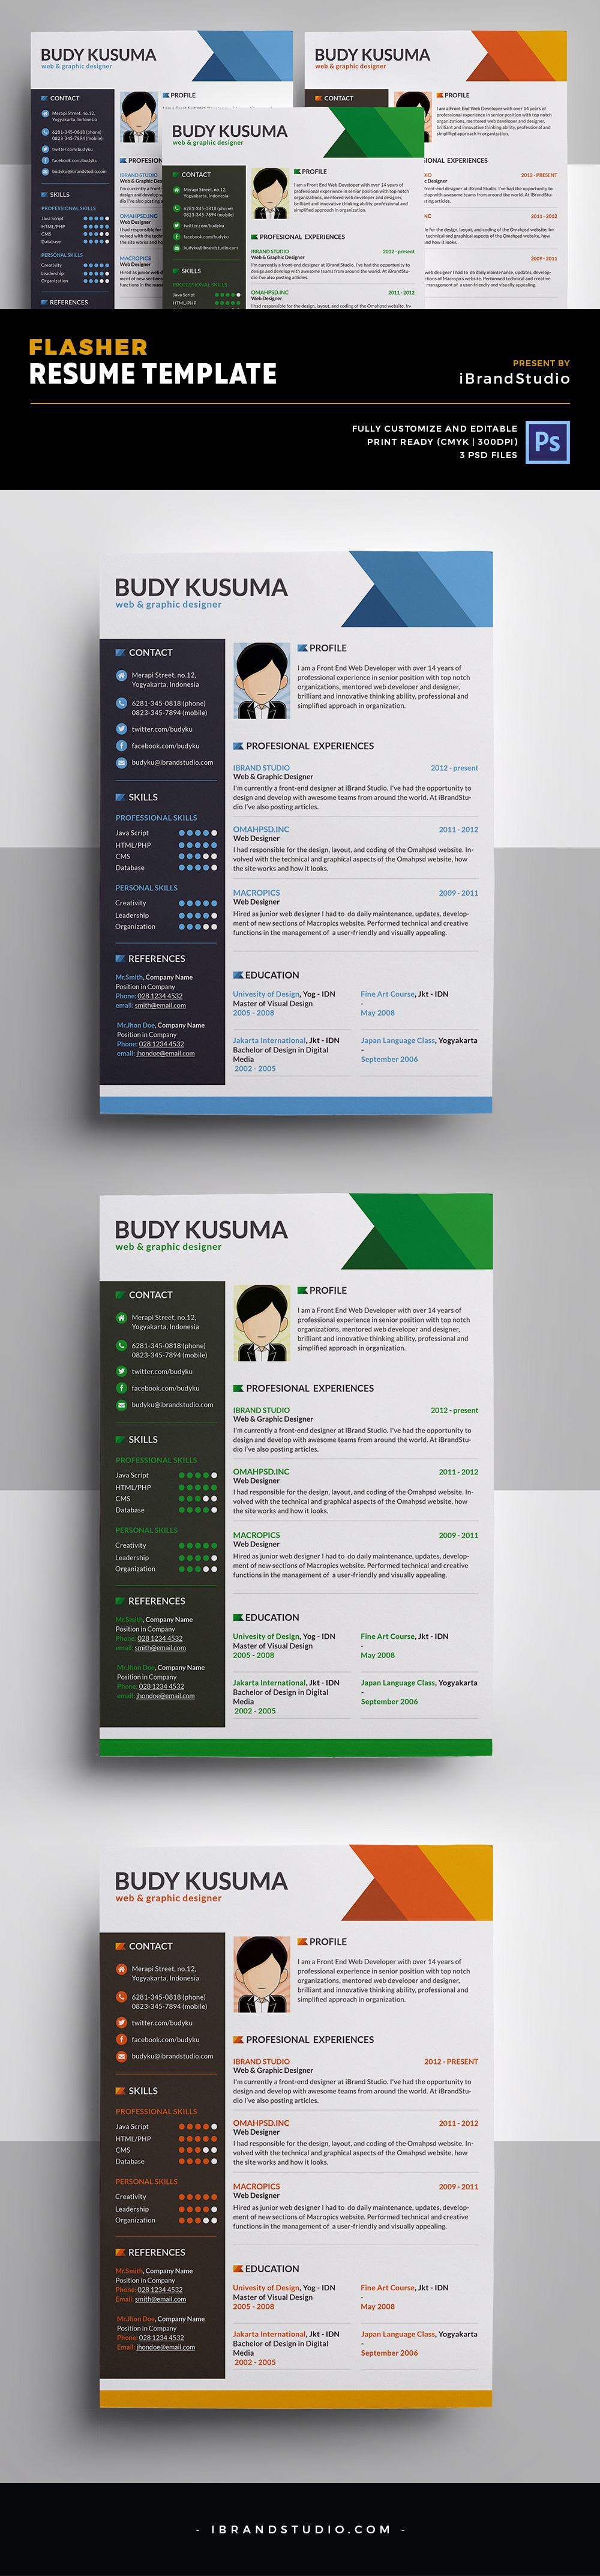 Free Flasher Resume Template